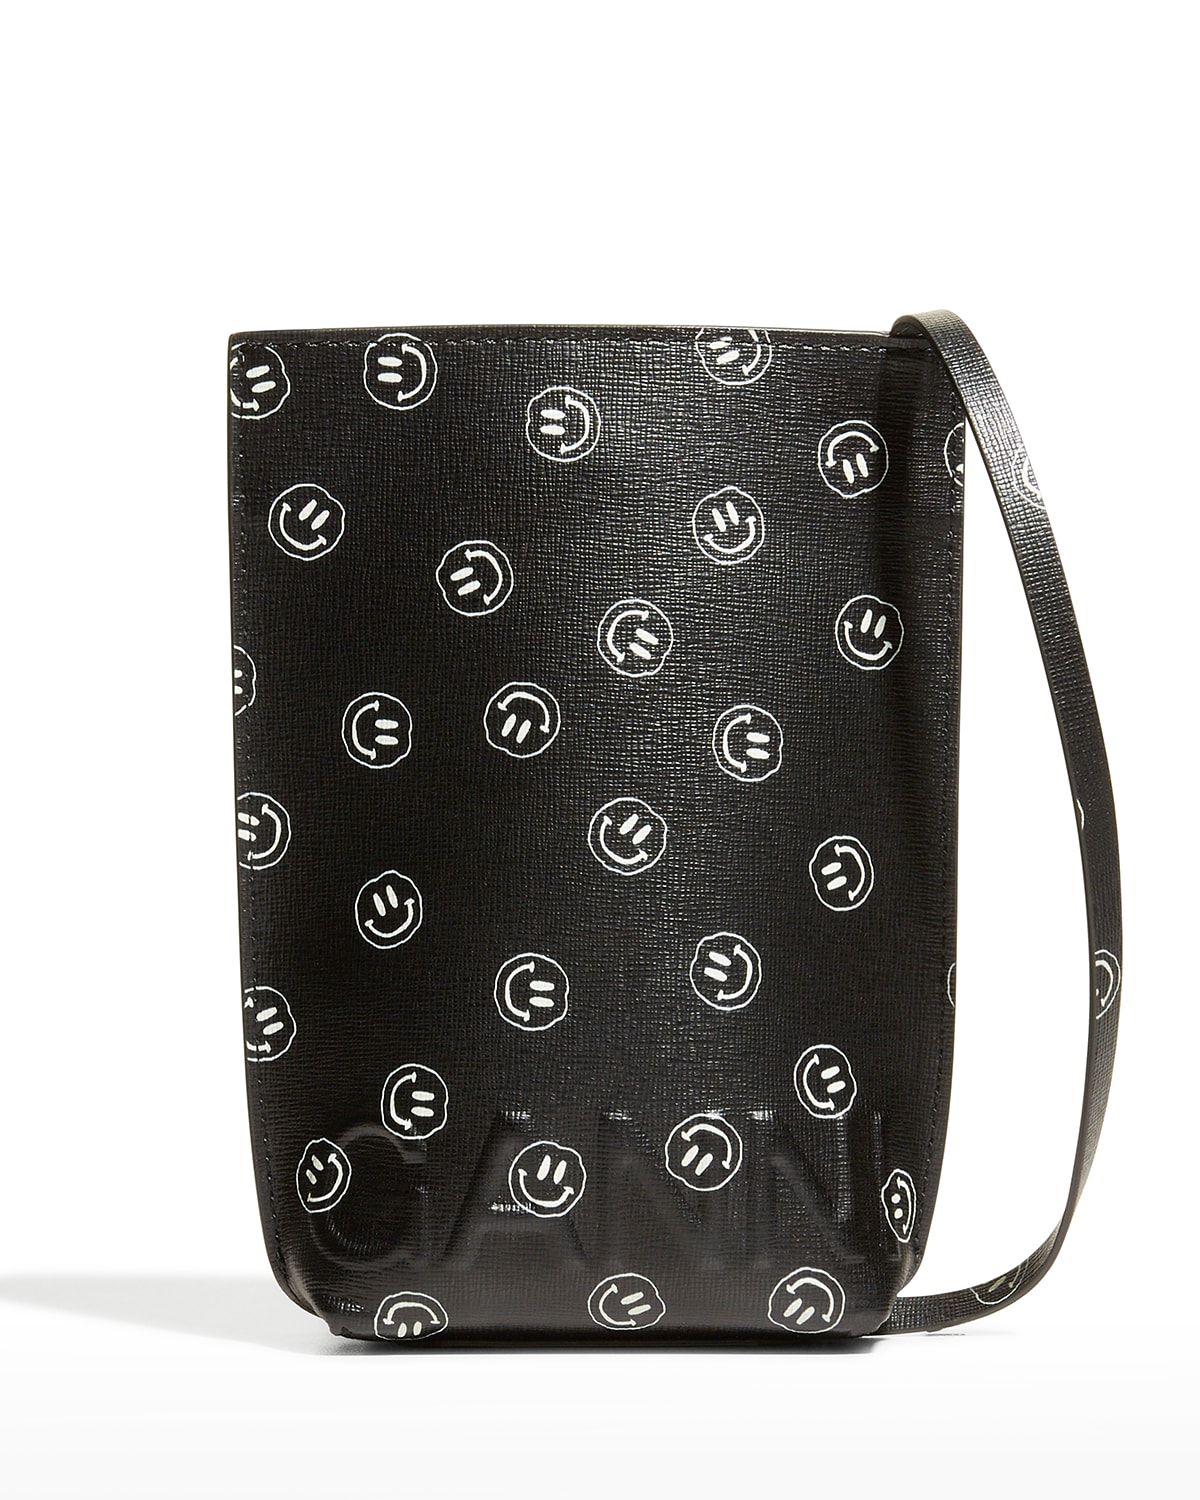 Smiley Face Recycled Leather Pouch Crossbody Bag